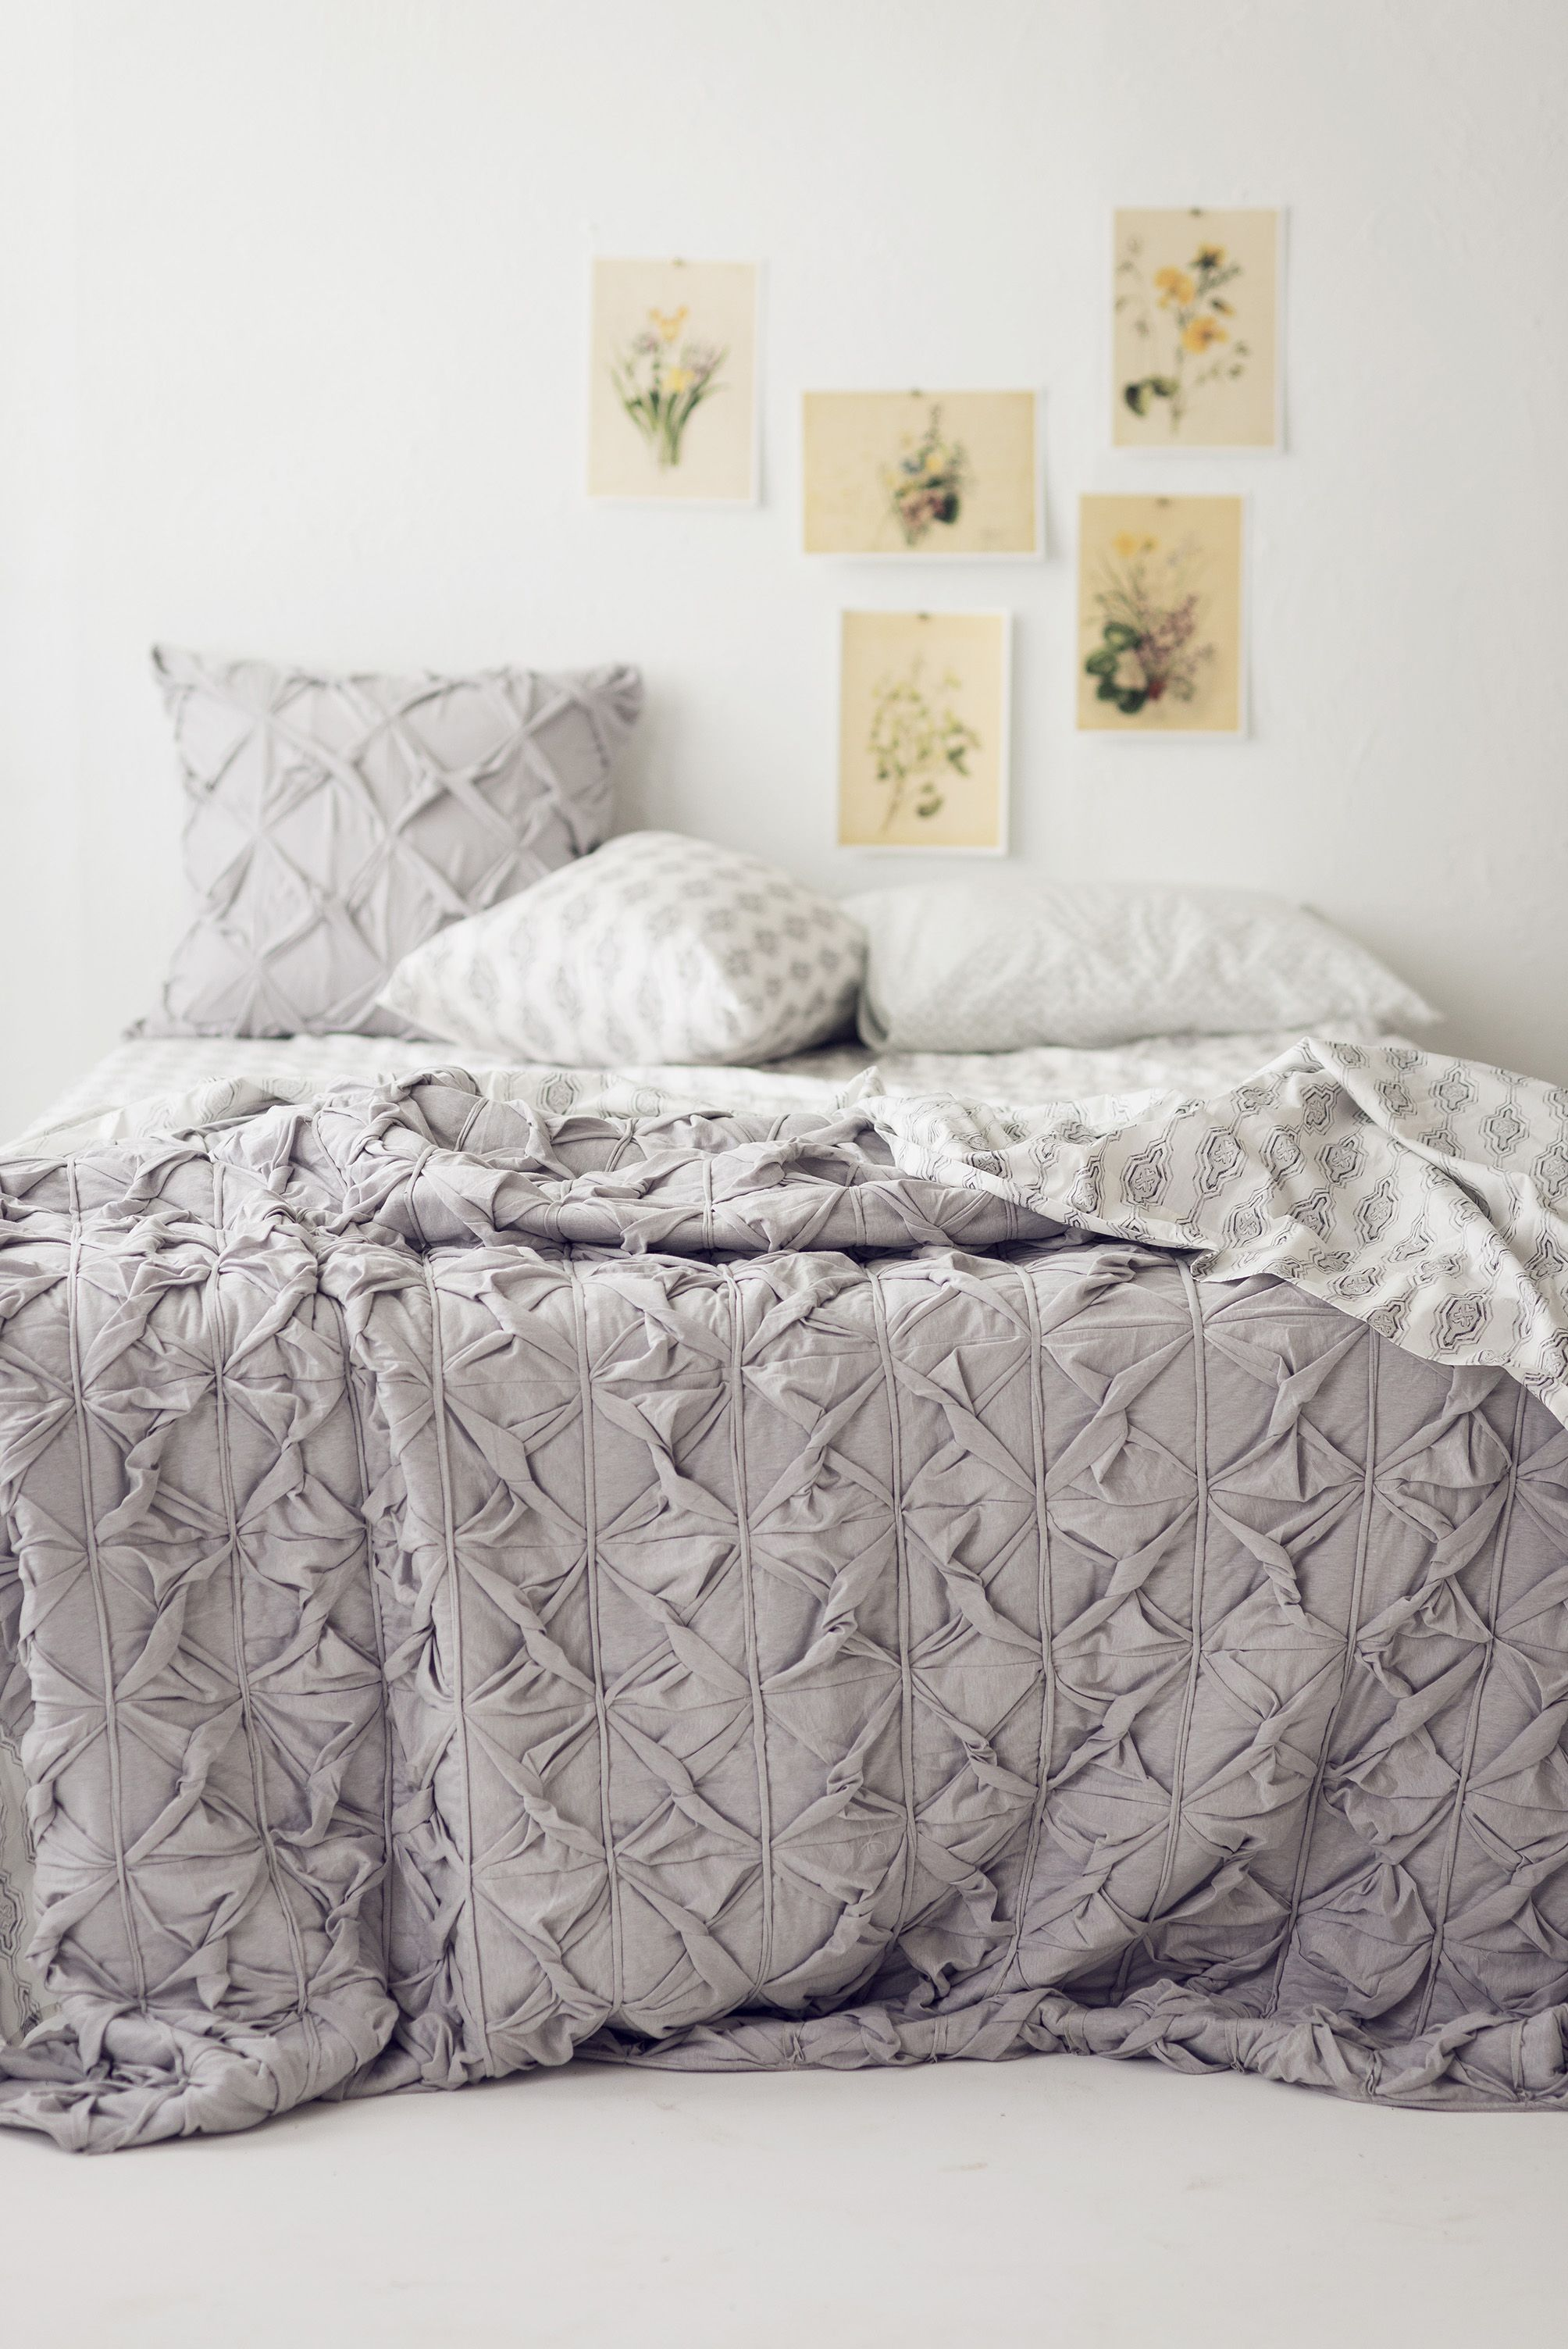 Twister quilt in Grey with Mosaic sheet set.